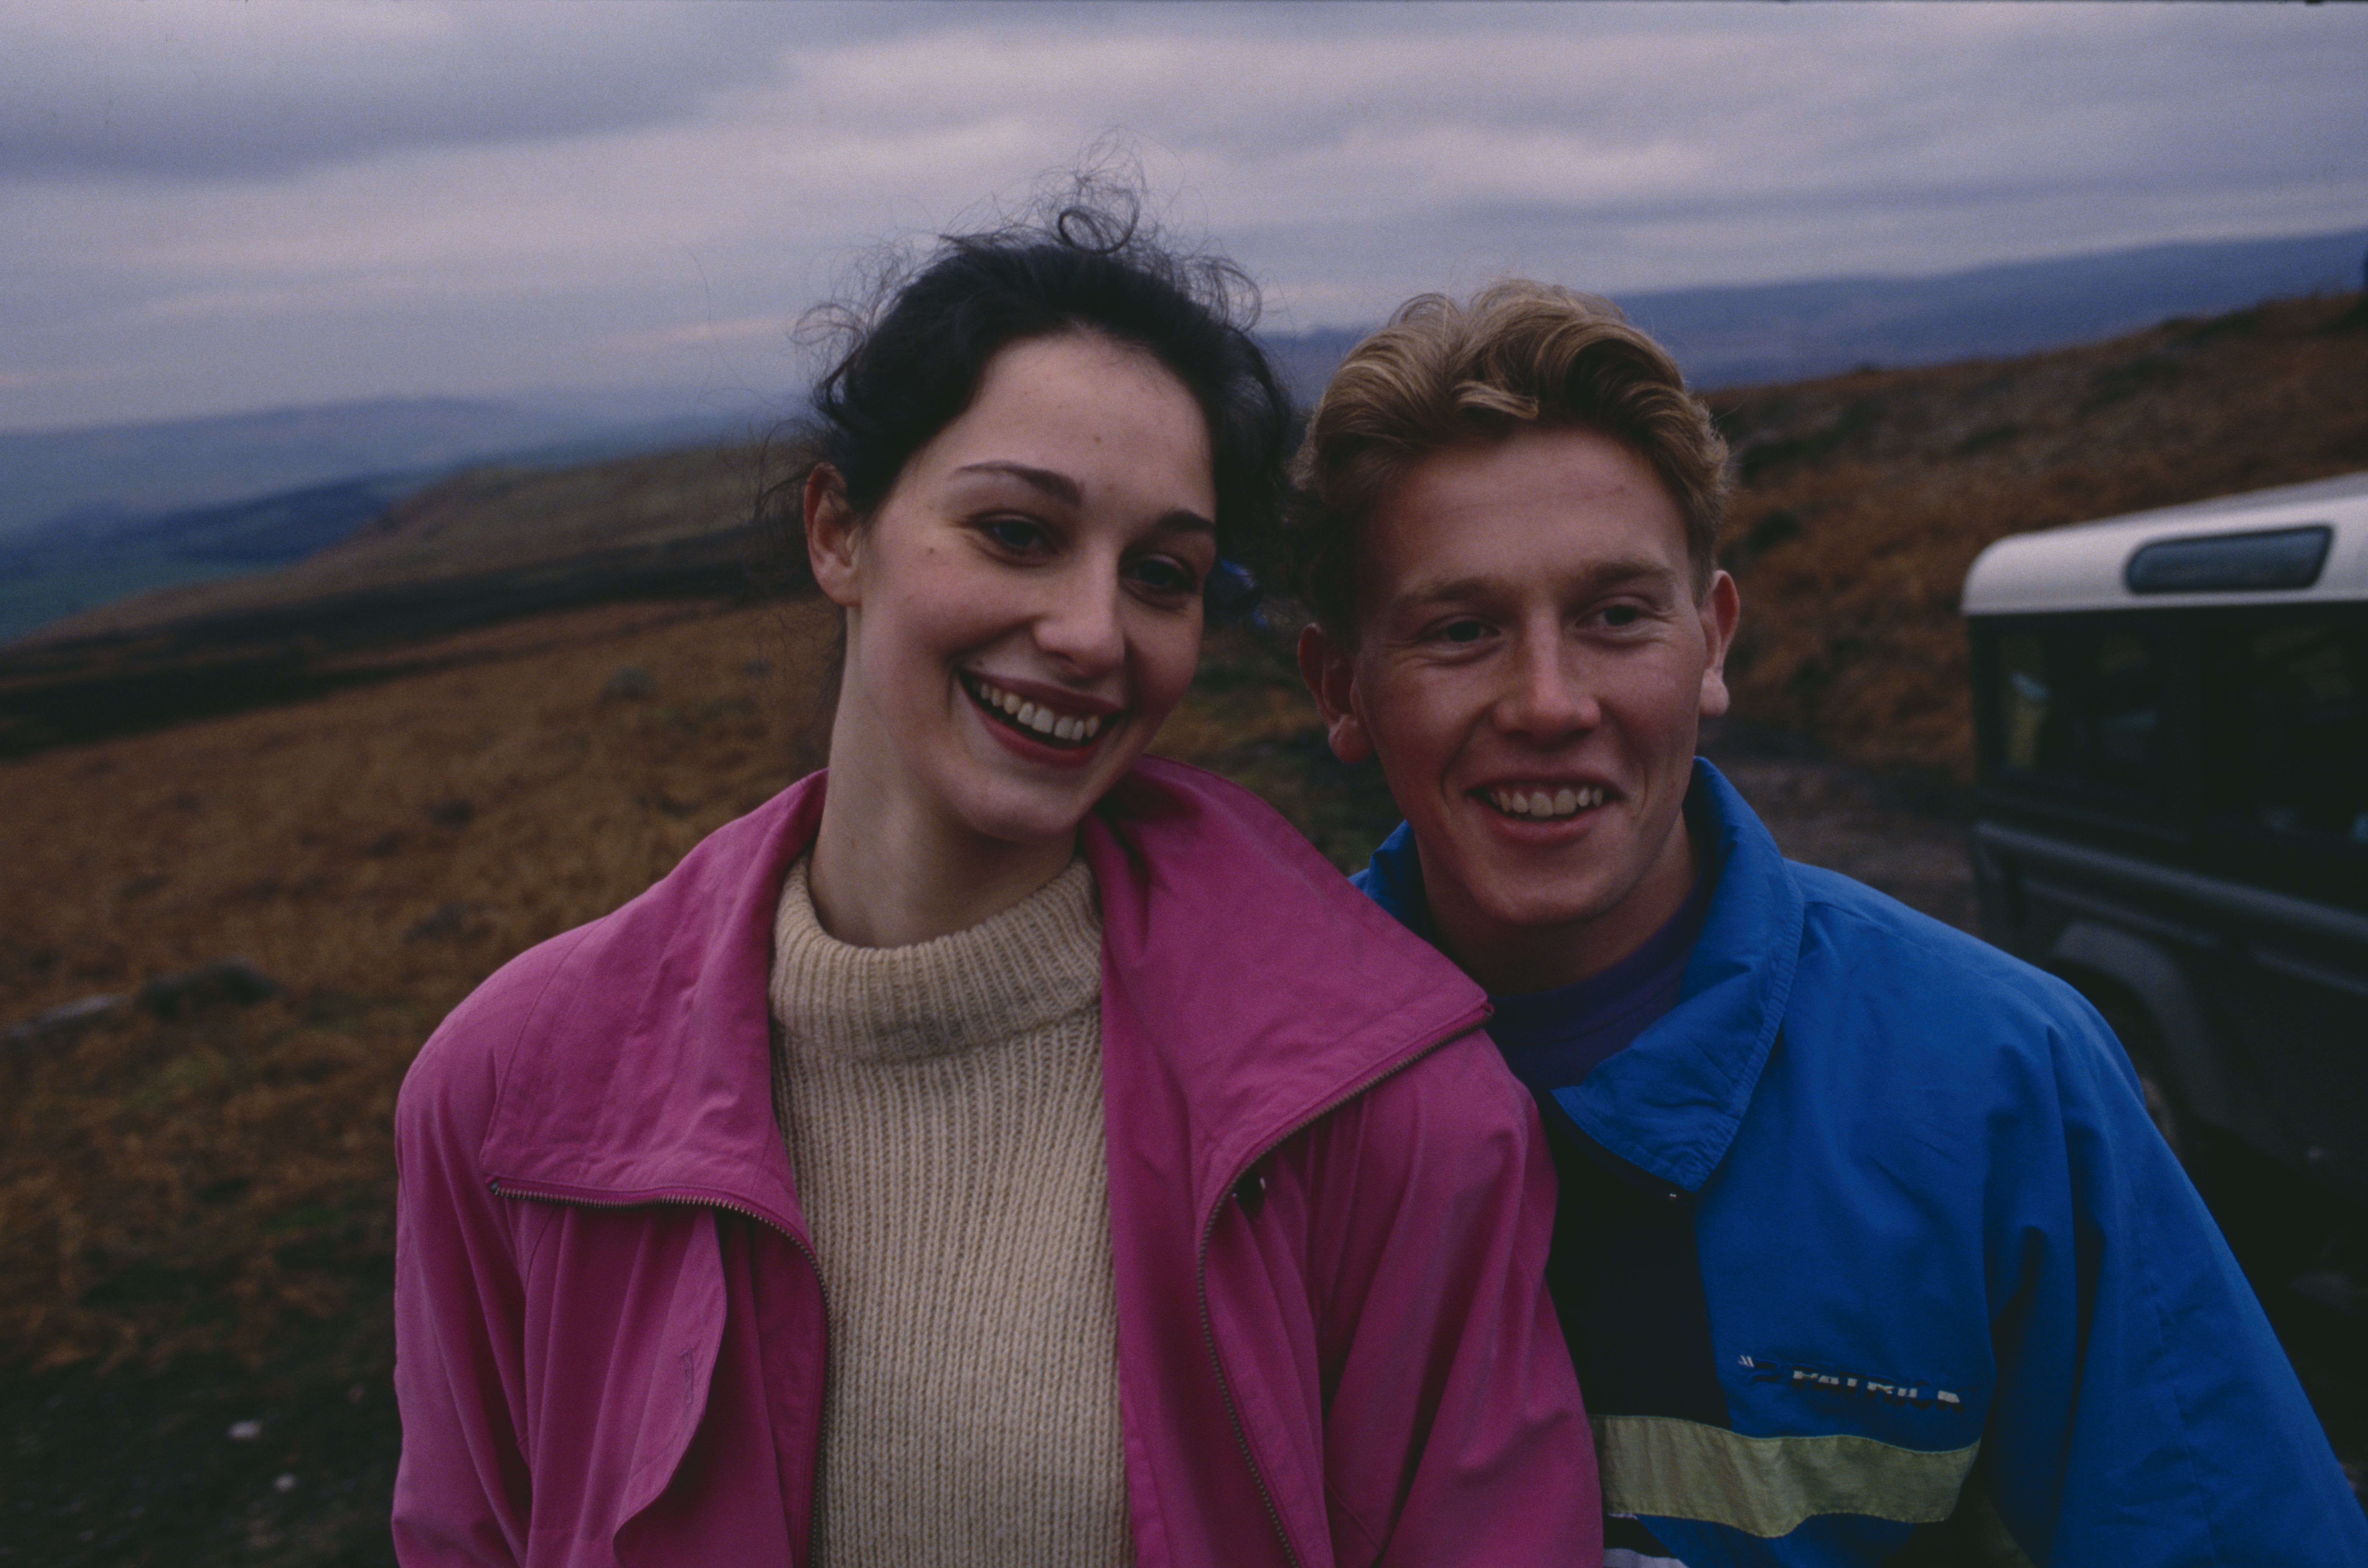 Editorial use only Mandatory Credit: Photo by ITV/Shutterstock (8081371c) Rebekah Joy Gilgan (as Debbie Buttershaw) and Craig McKay (as Mark Hughes) on a fell run (Ep 1755 - 13th April 1993) 'Emmerdale' TV Series - 13 Apr 1993 Emmerdale Farm is a long-running British soap opera set in Emmerdale, a fictional village in the Yorkshire Dales. Created by Kevin Laffan, it first broadcast on 16 October 1972 and produced by ITV Yorkshire.